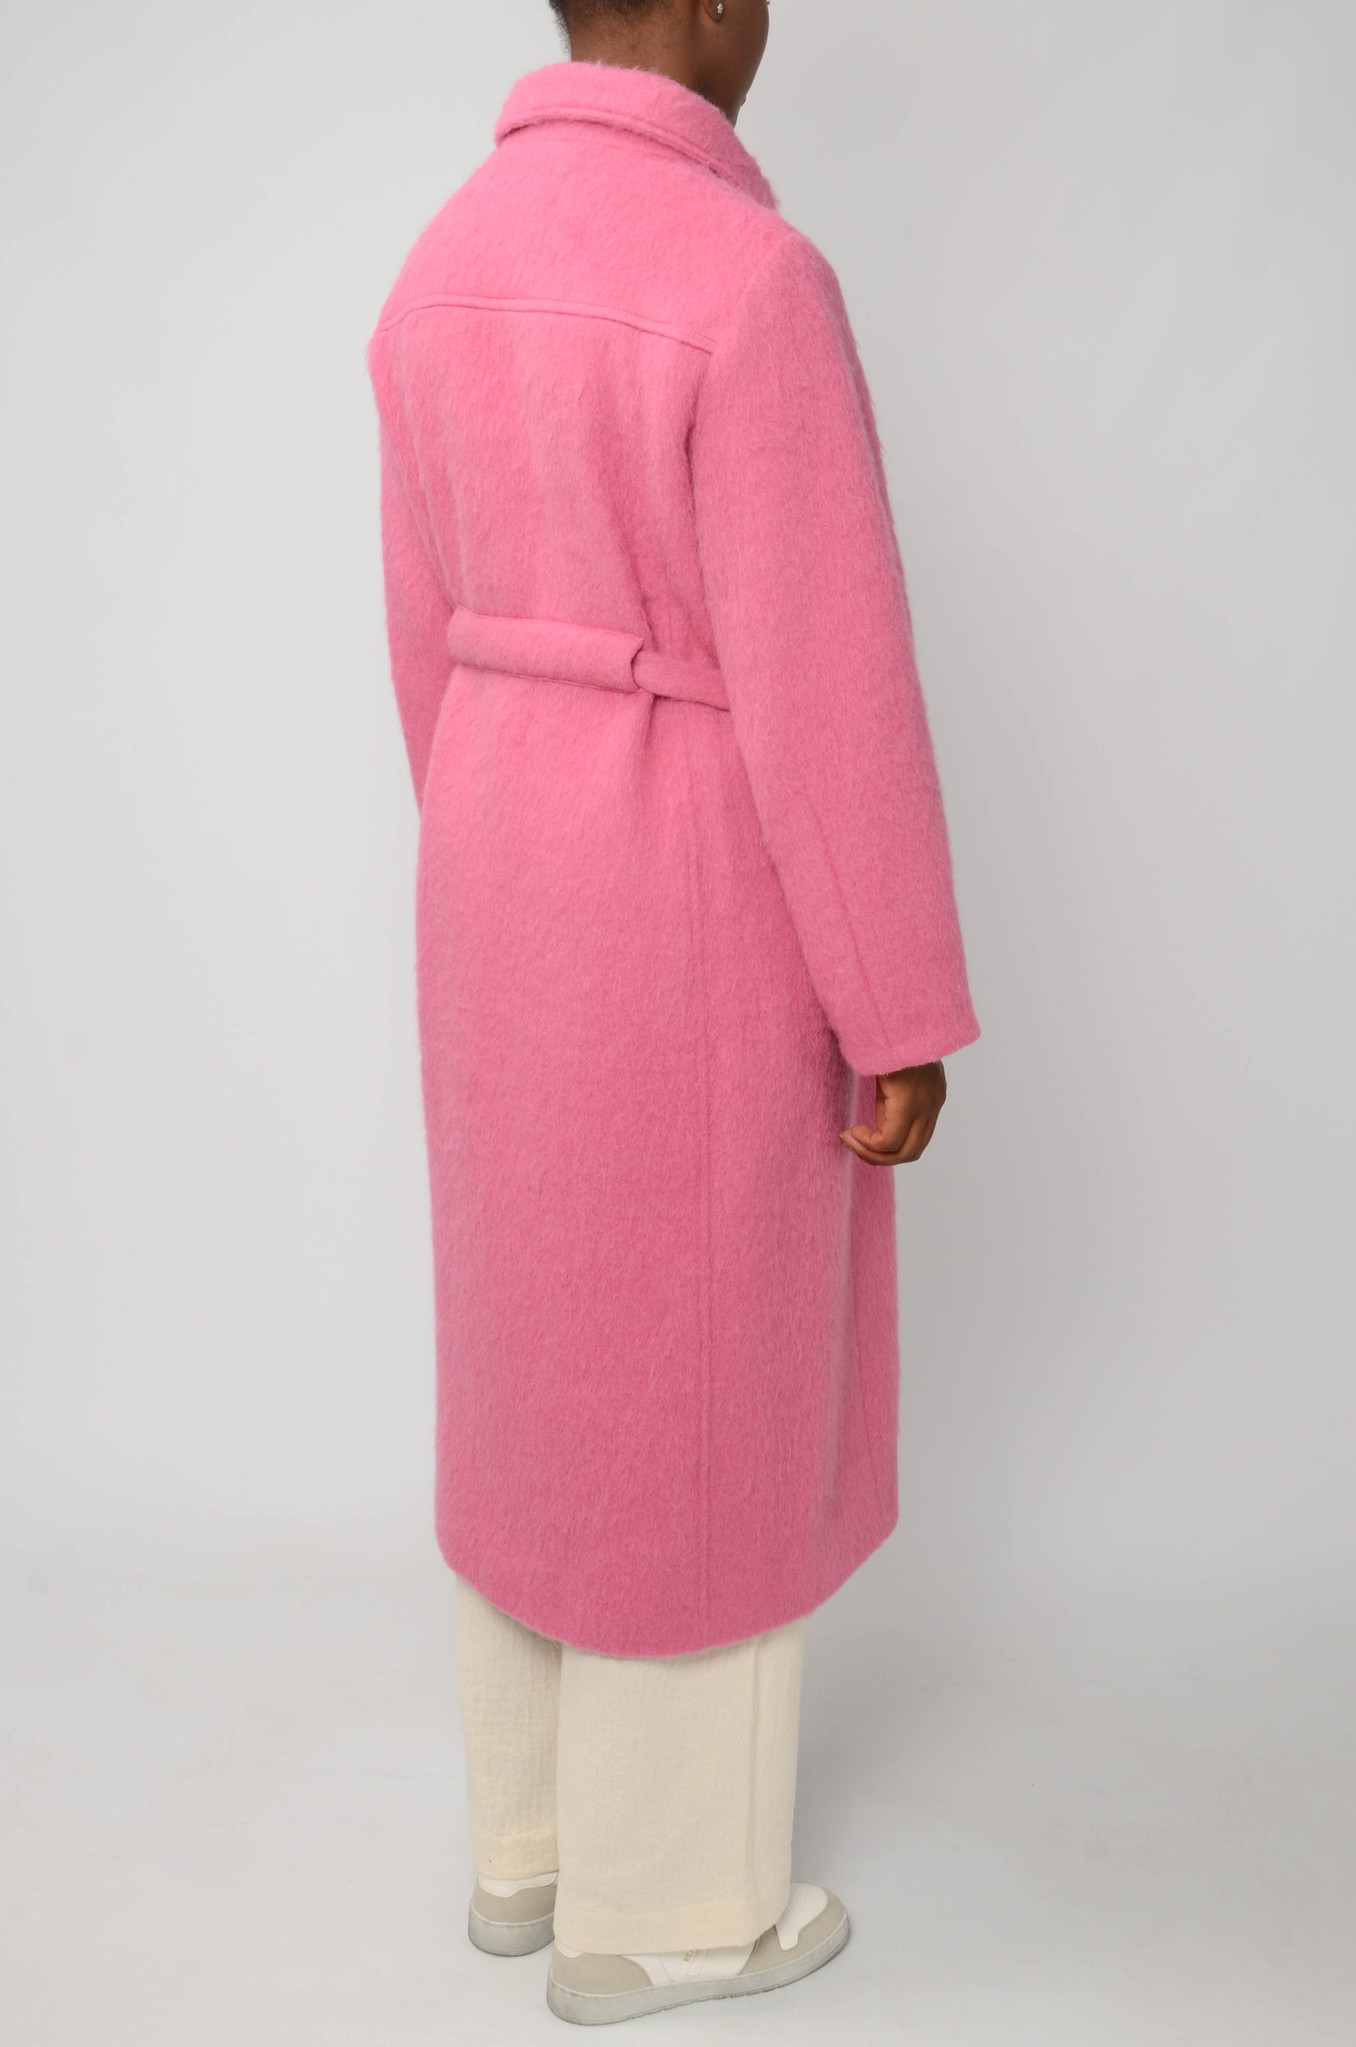 LONG BELTED COAT IN BRIGHT PINK-4